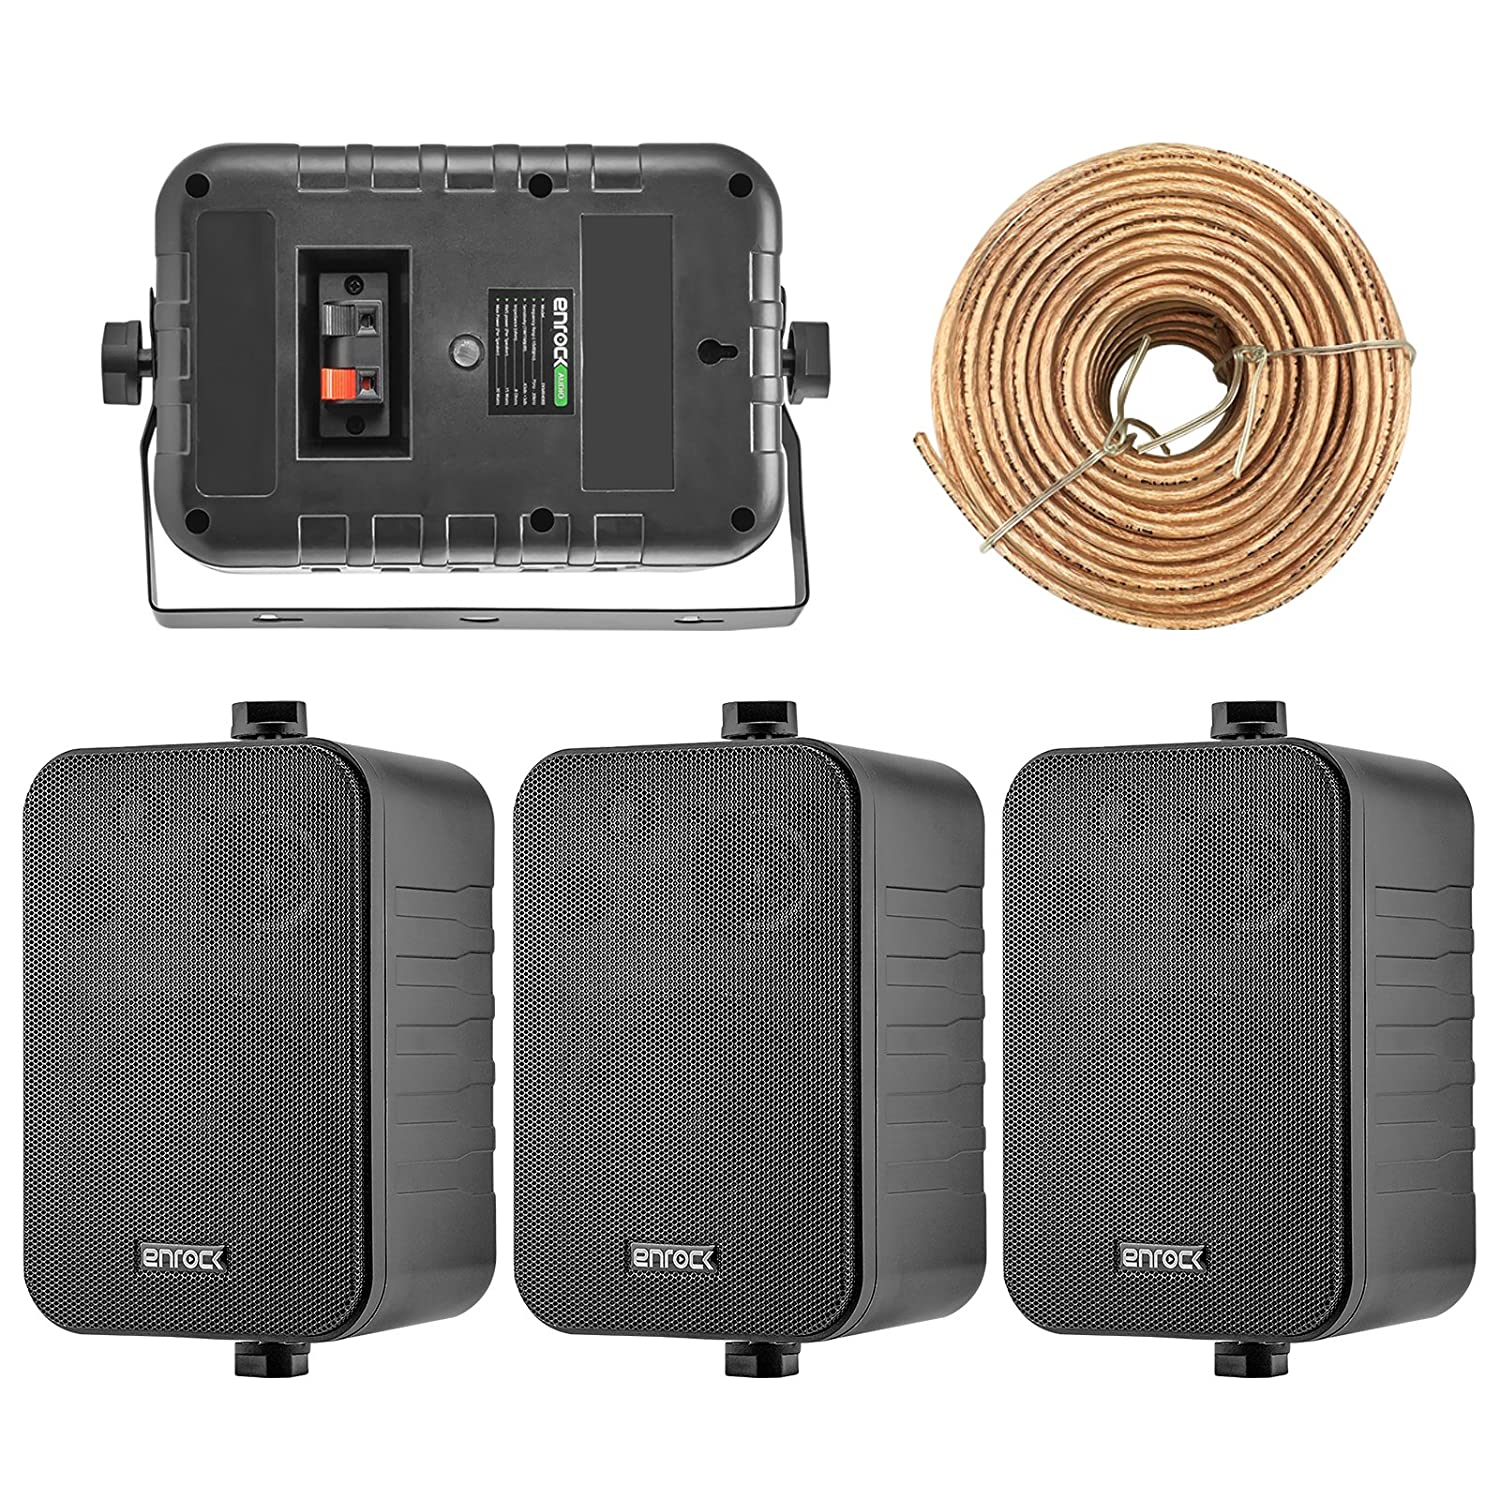 2 Pairs of Enrock Audio EKMR408W 4-Inch 200 Watts White 3-Way Indoor//Outdoor Marine Boat Box-Speaker Combo with 50 Foot 18 Guage Speaker Wire 4X Speakers Bundle Package